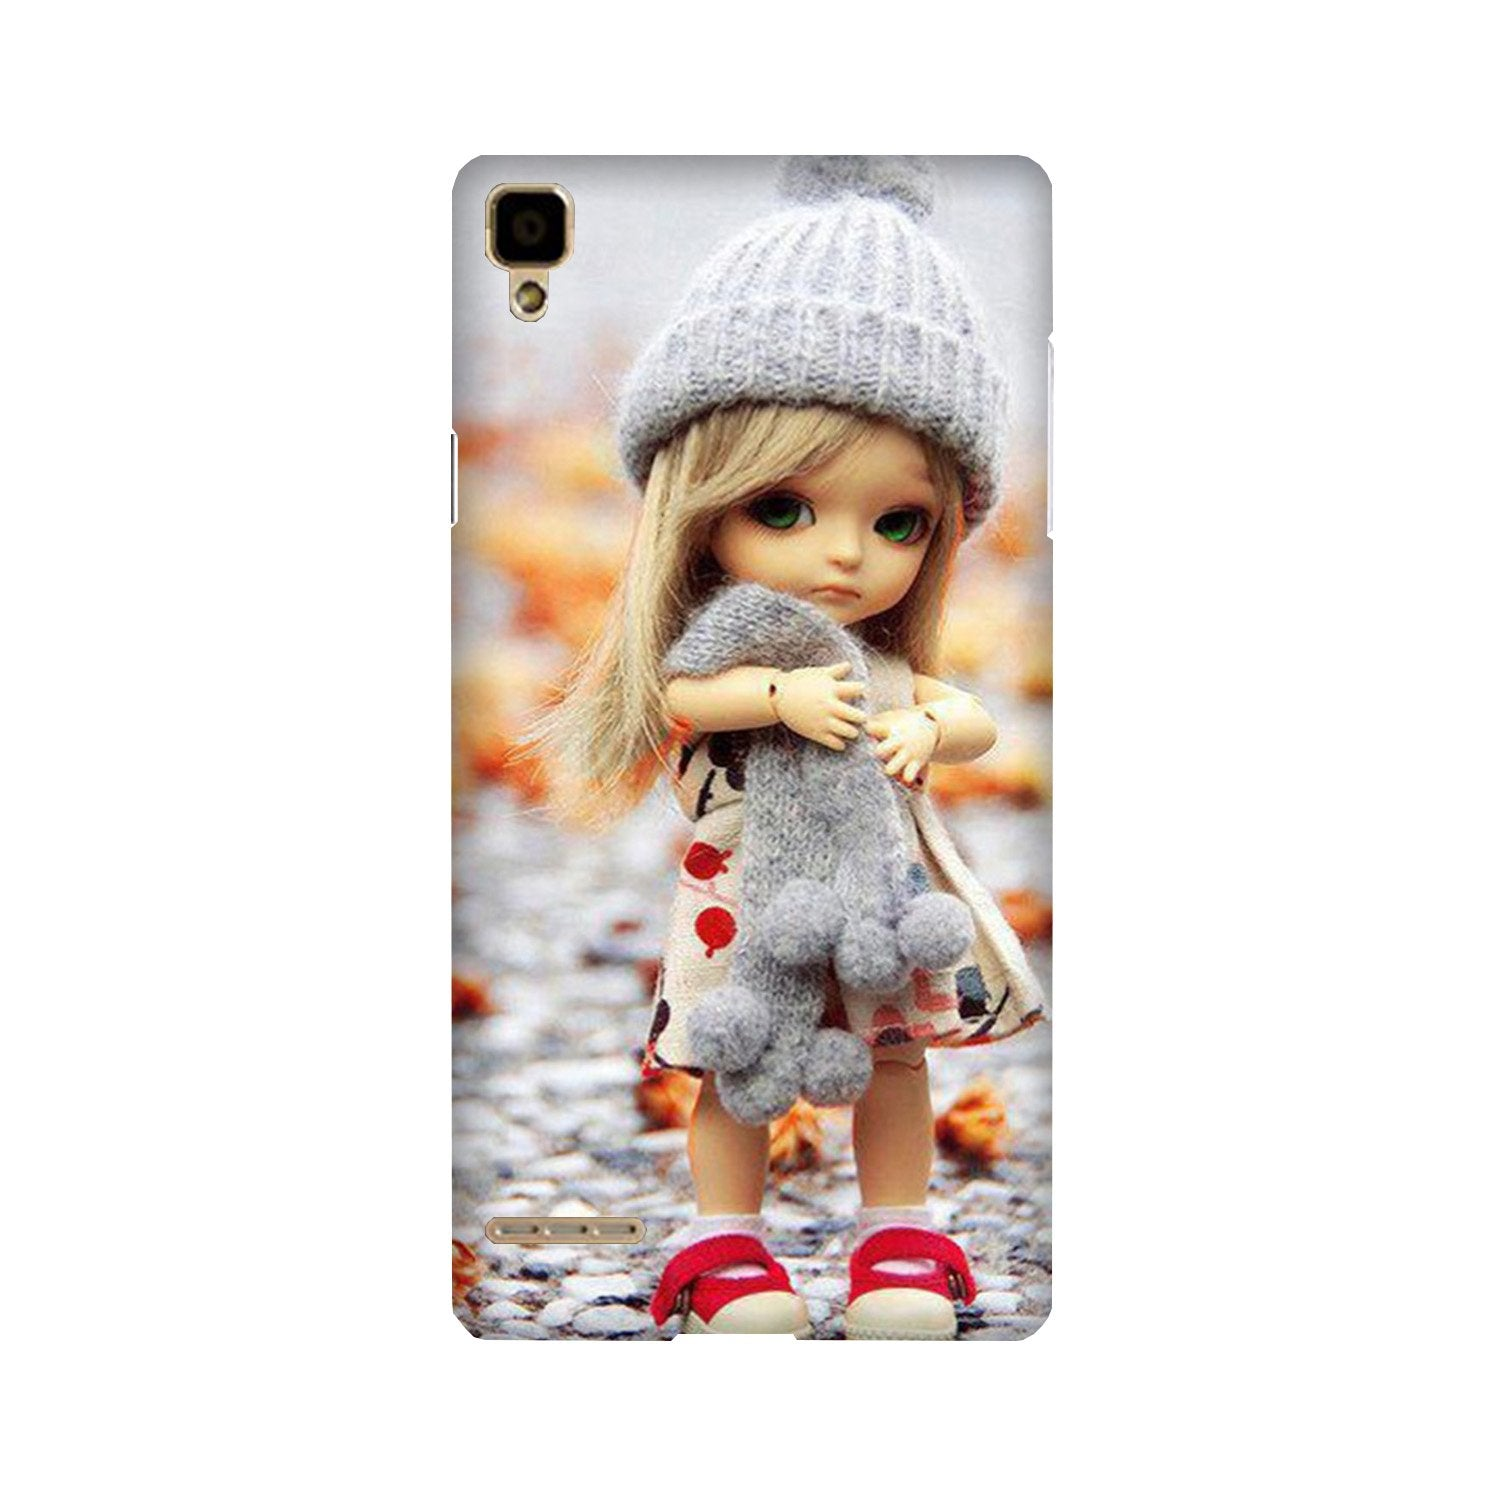 Cute Doll Case for Oppo F1